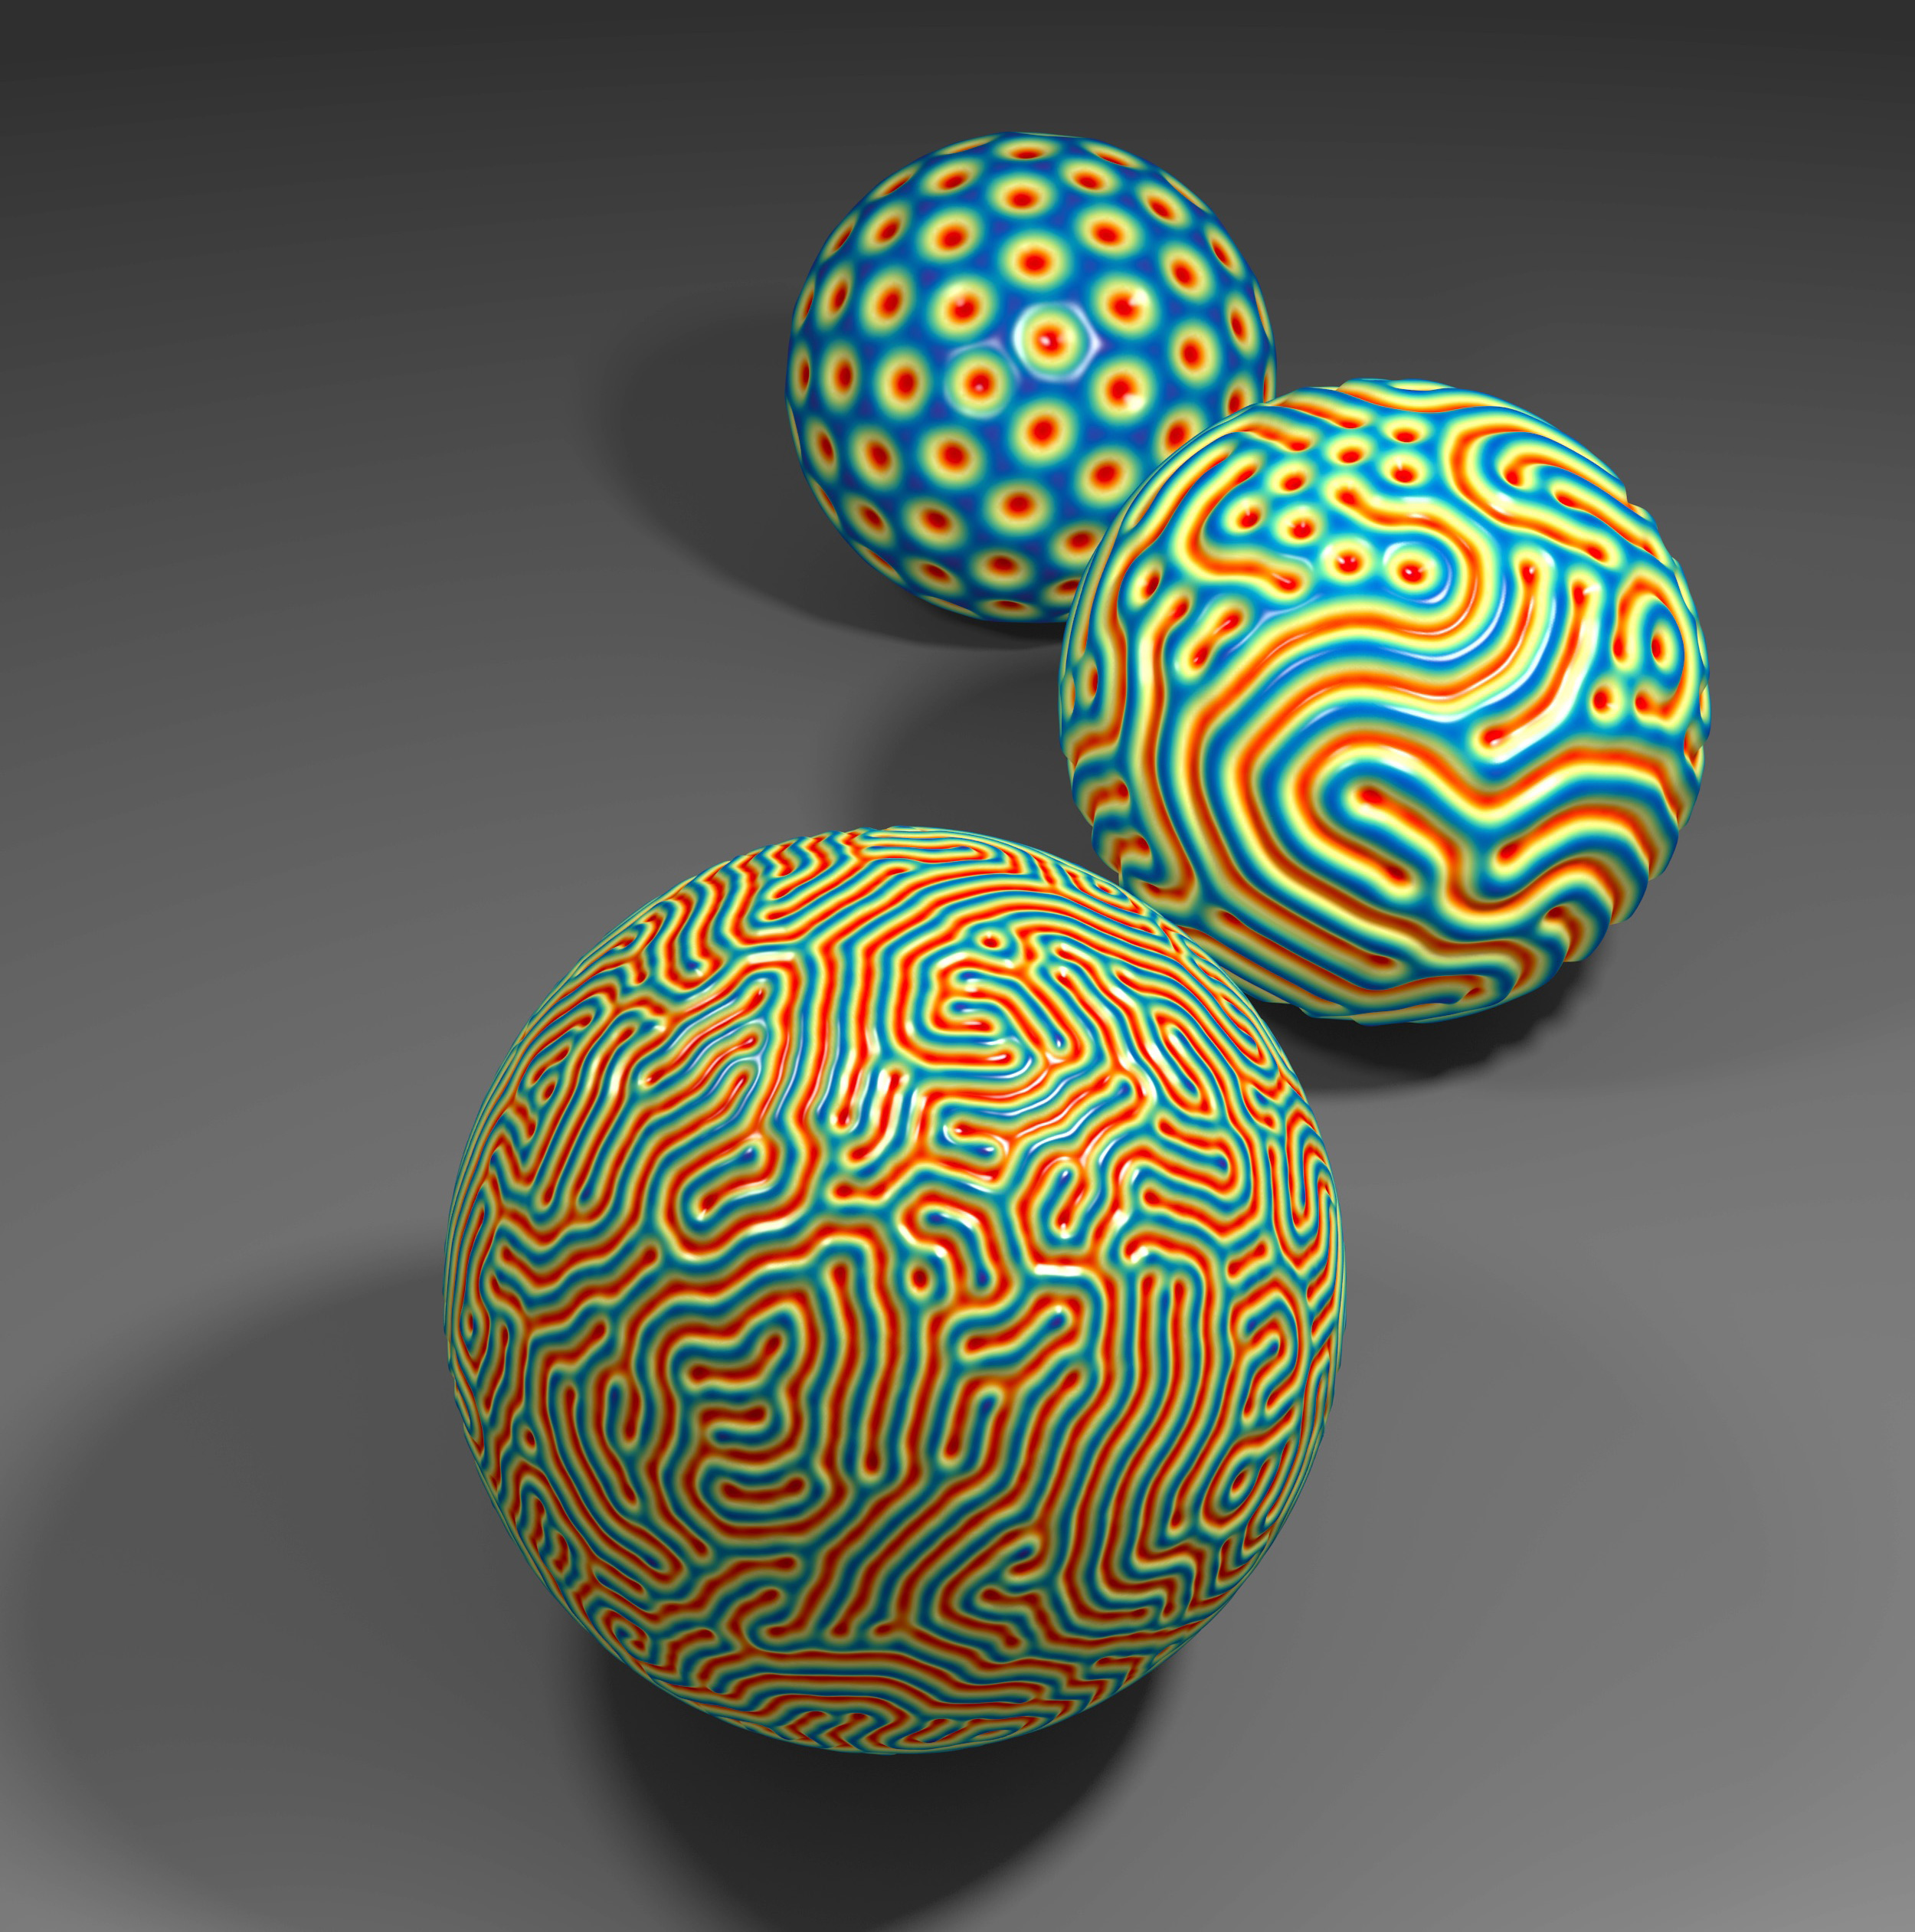 MIT Patterning Fingerprints 02